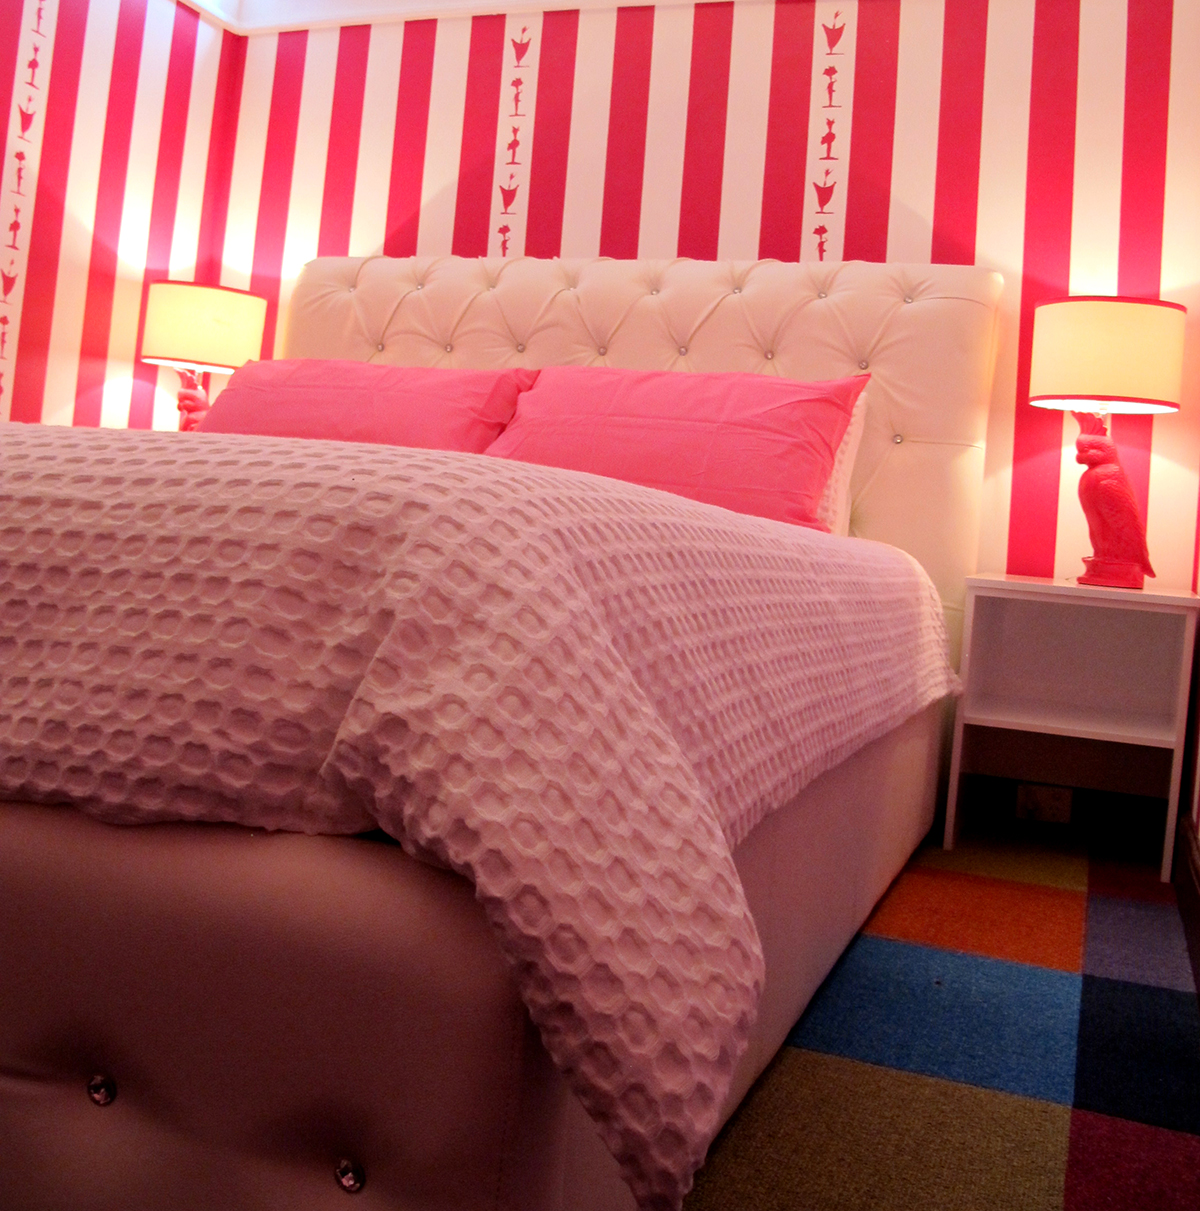 palace-hotel-priscilla-suite-pinkbed_2.jpg